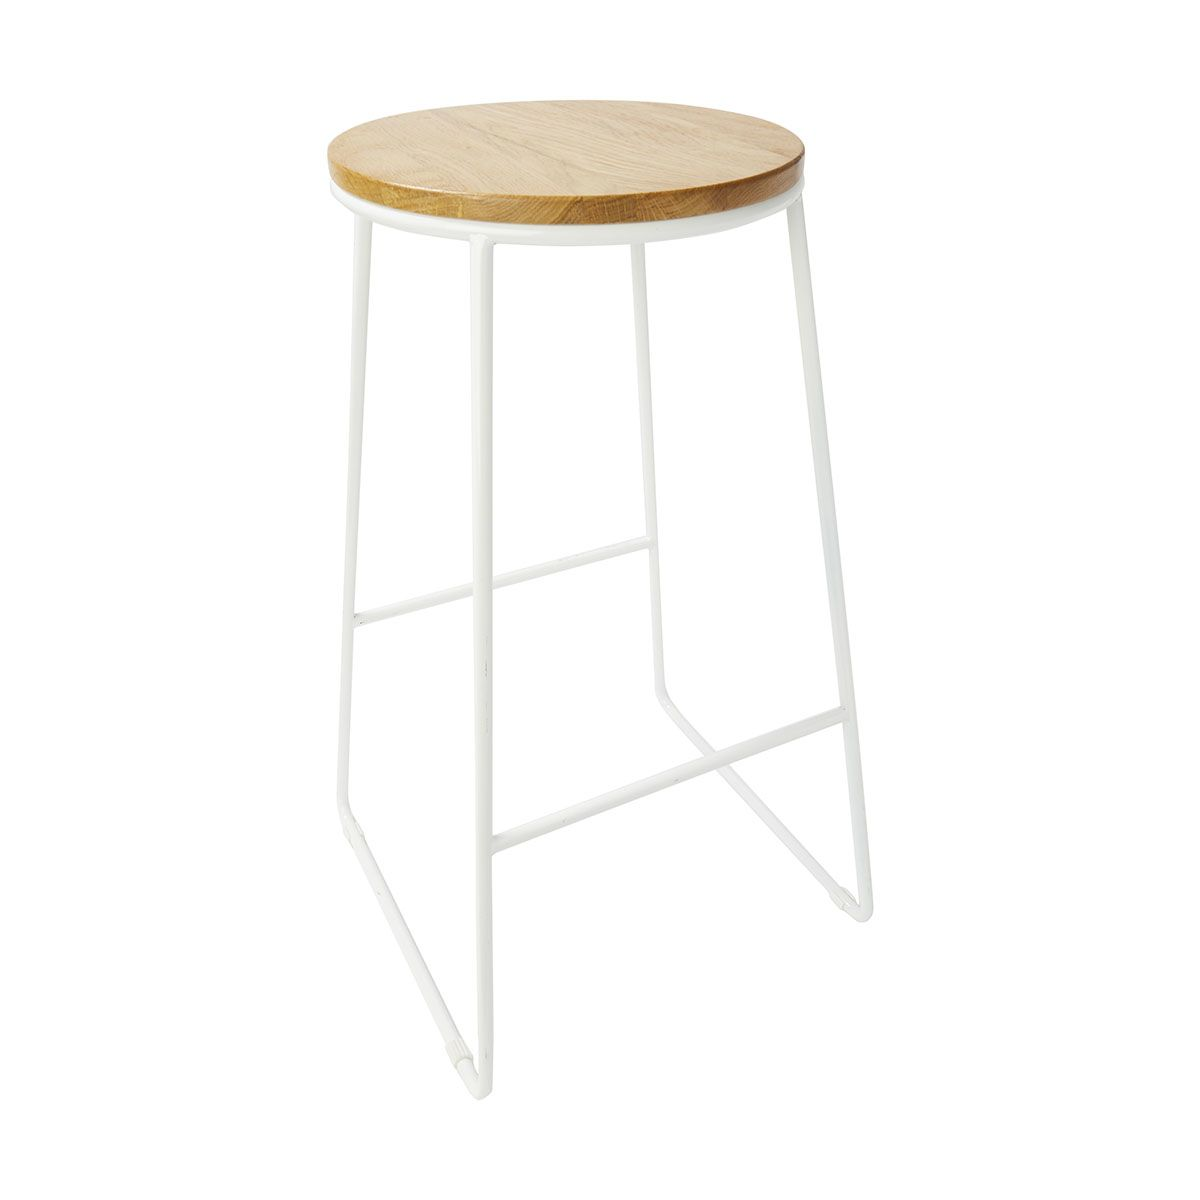 Industrial Stool - Natural & White | Kmart | House ideas ...